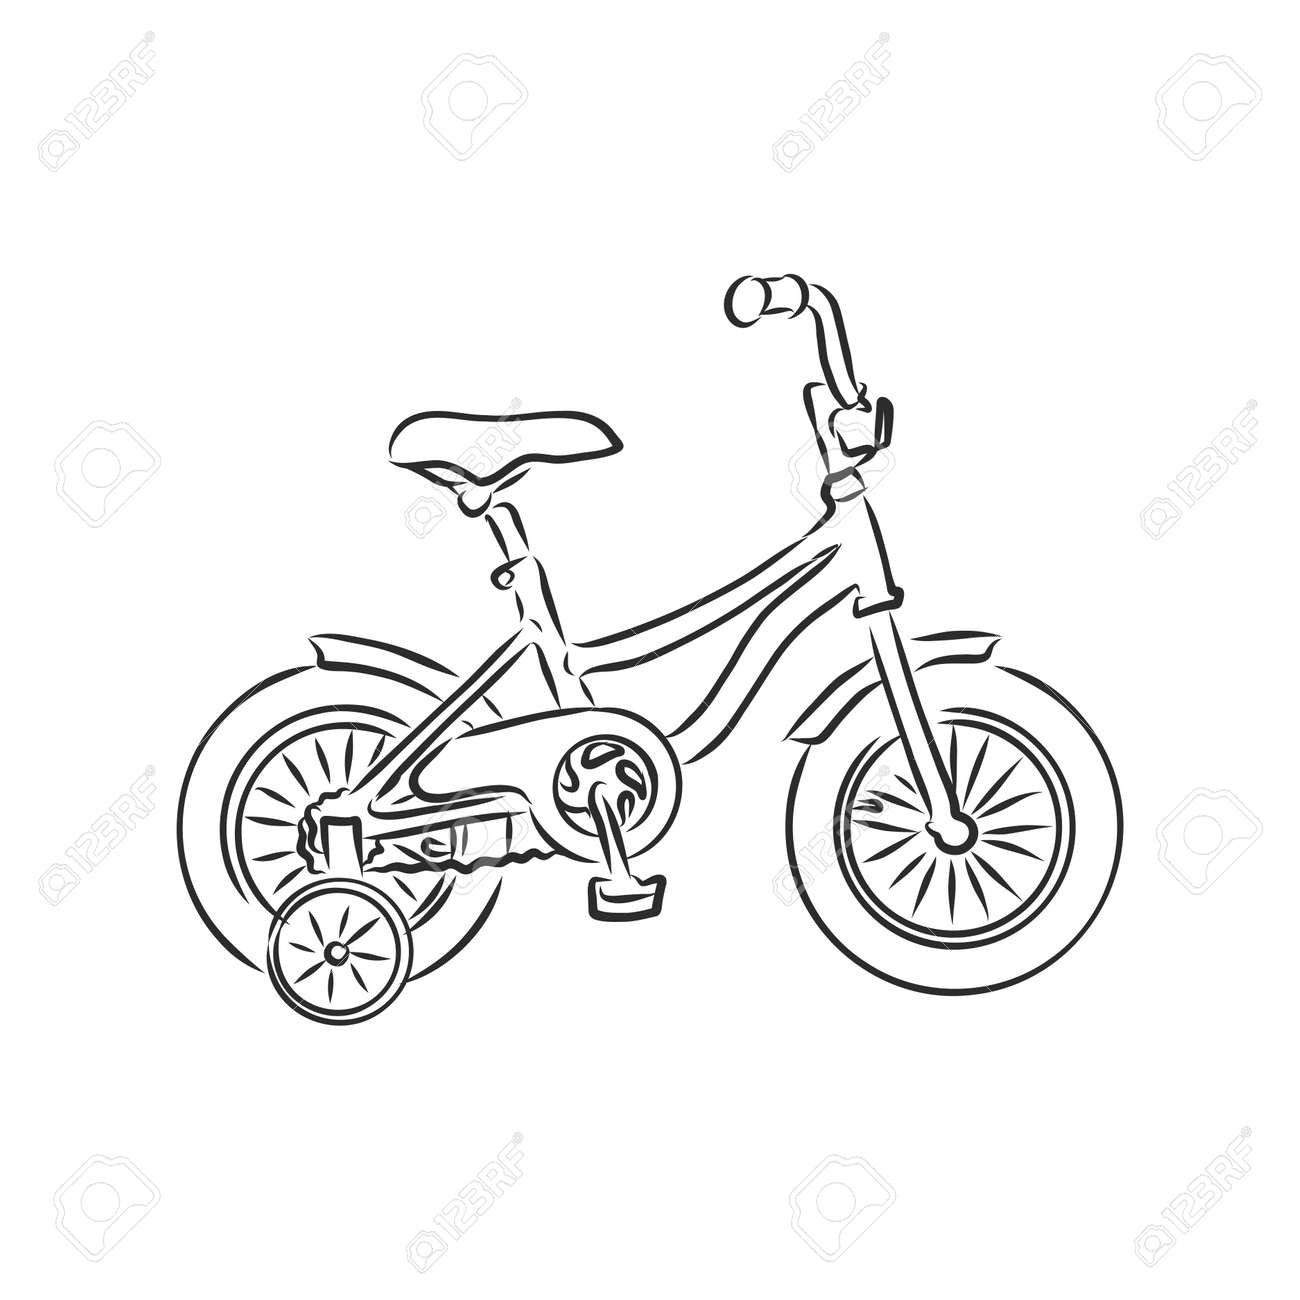 Children's bicycle. Element for extreme sports. Outdoor activity element. Black and white vector isolated on white background. - 151256532